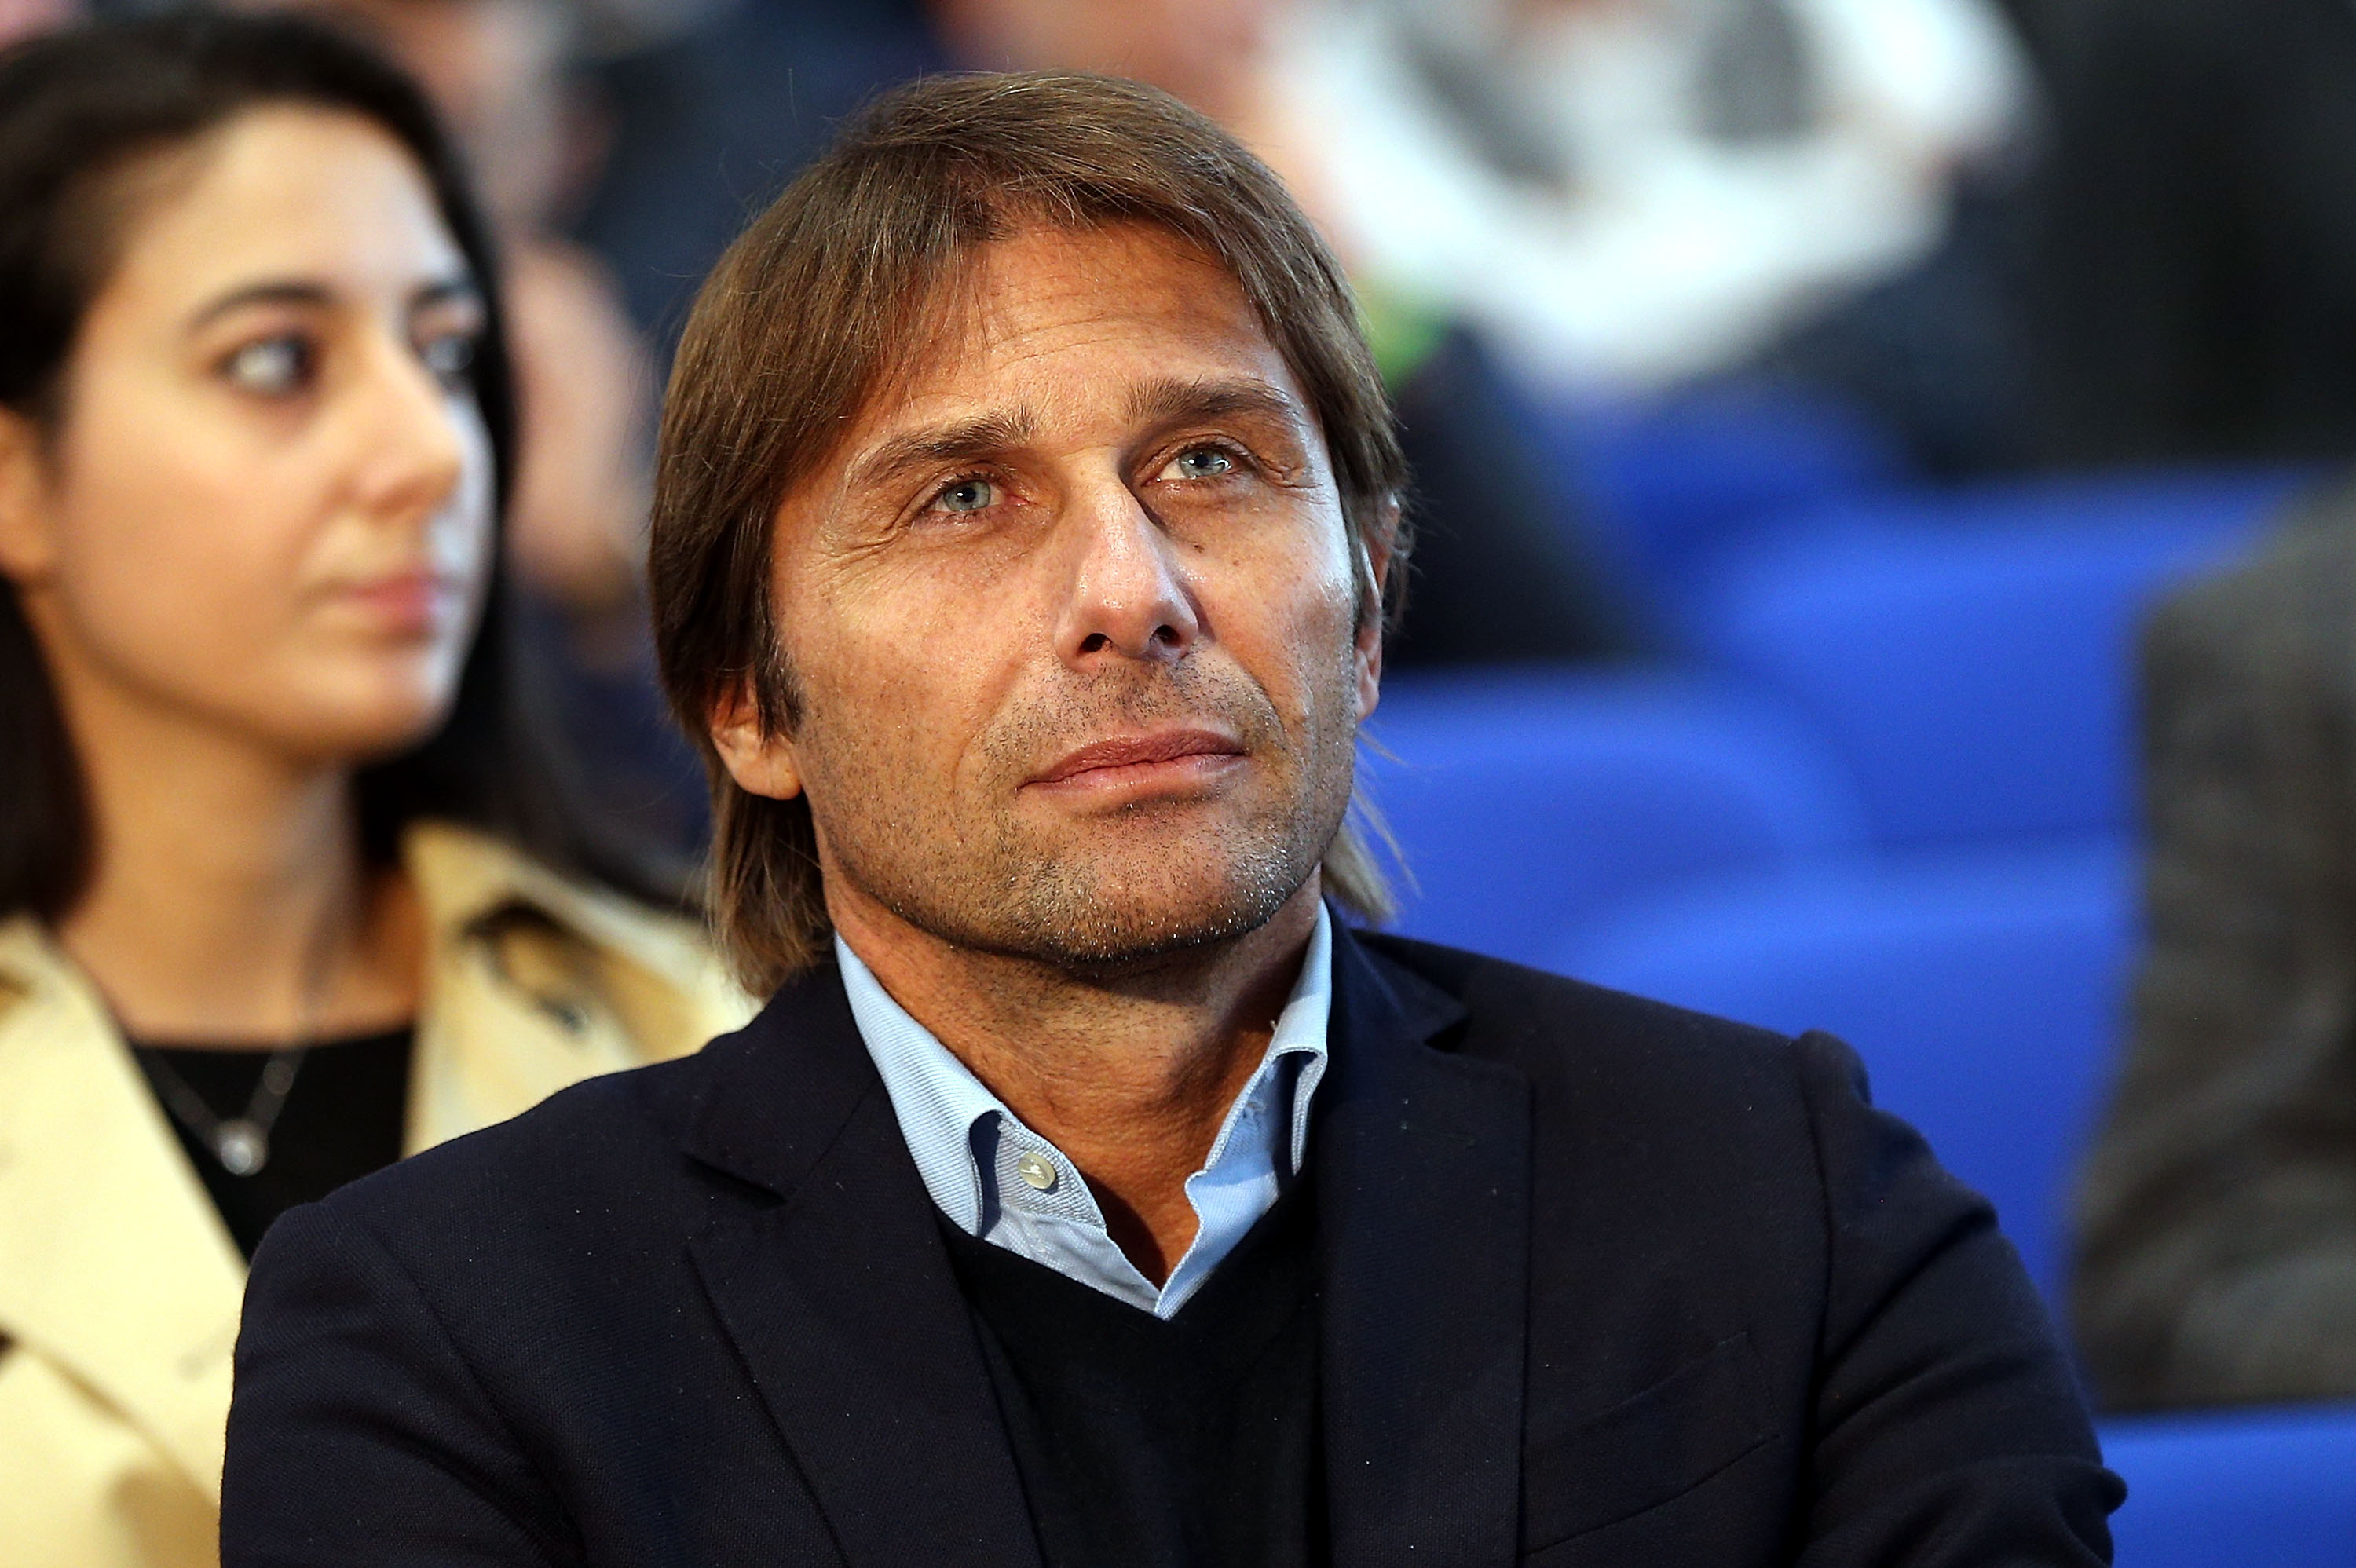 Antonio Conte 'close' to joining Inter Milan — reports